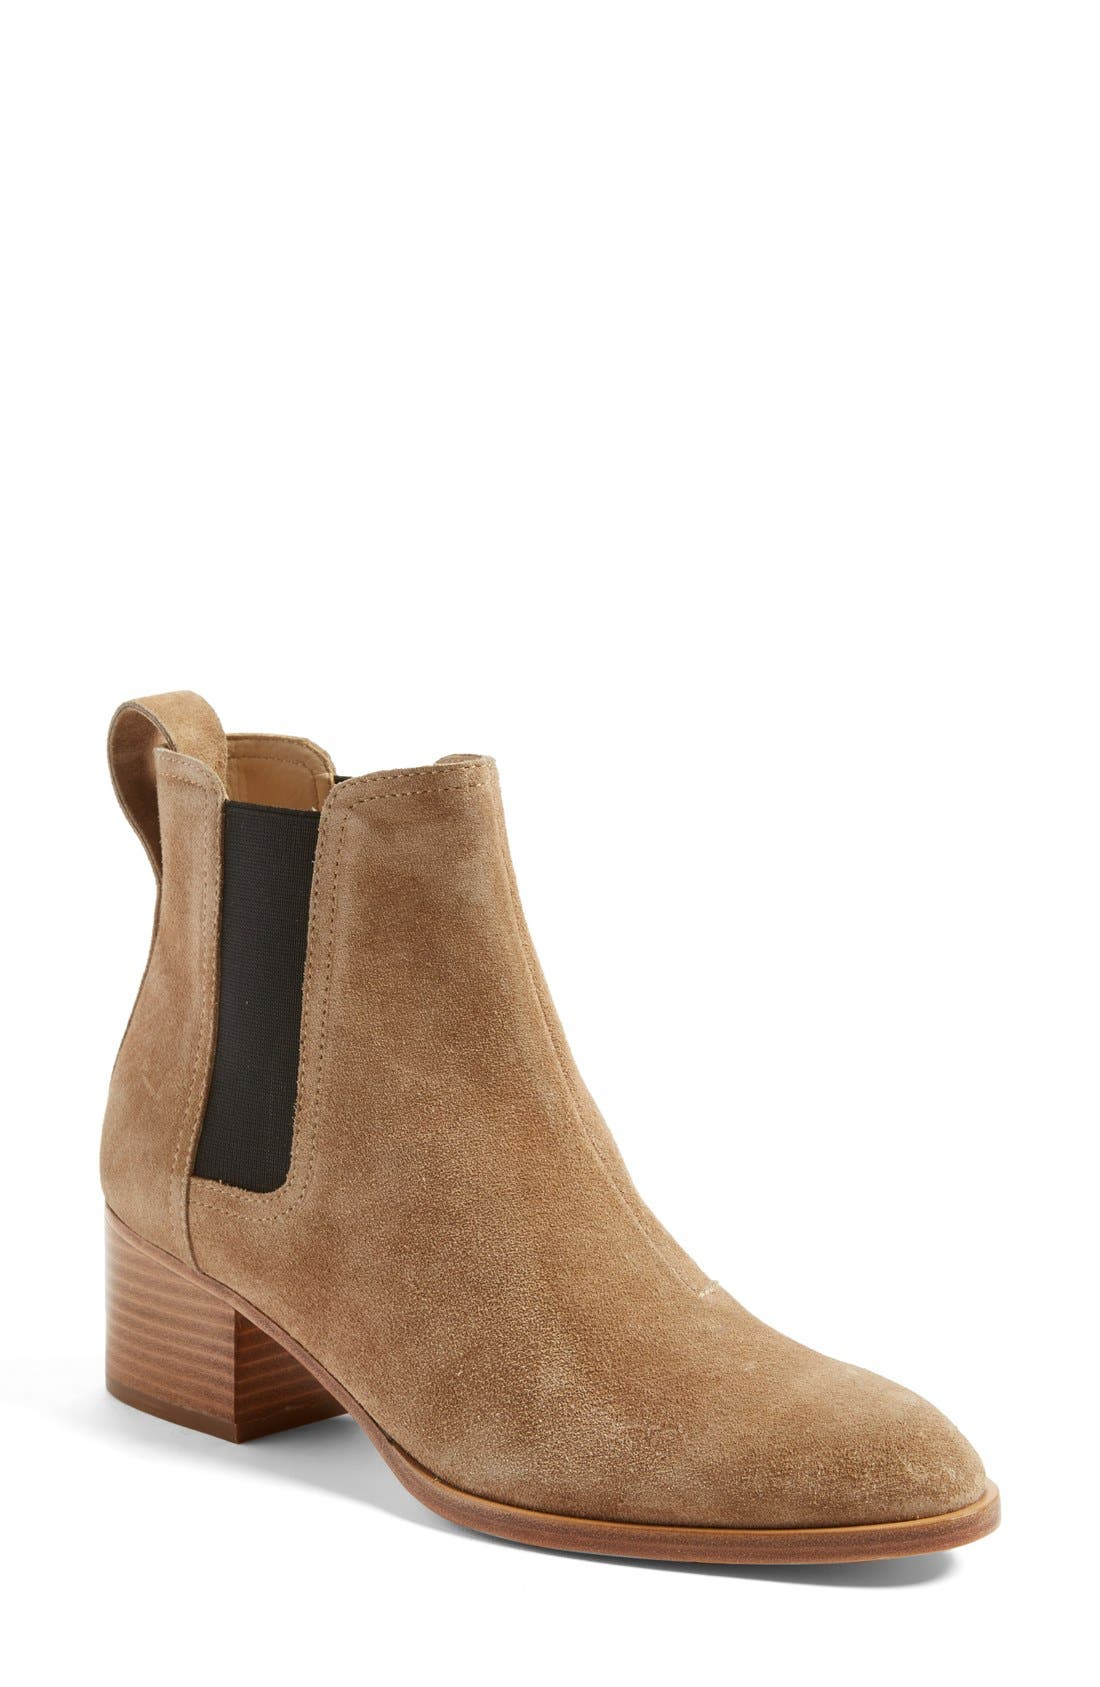 'Walker' Bootie,                             Main thumbnail 1, color,                             CAMEL SUEDE